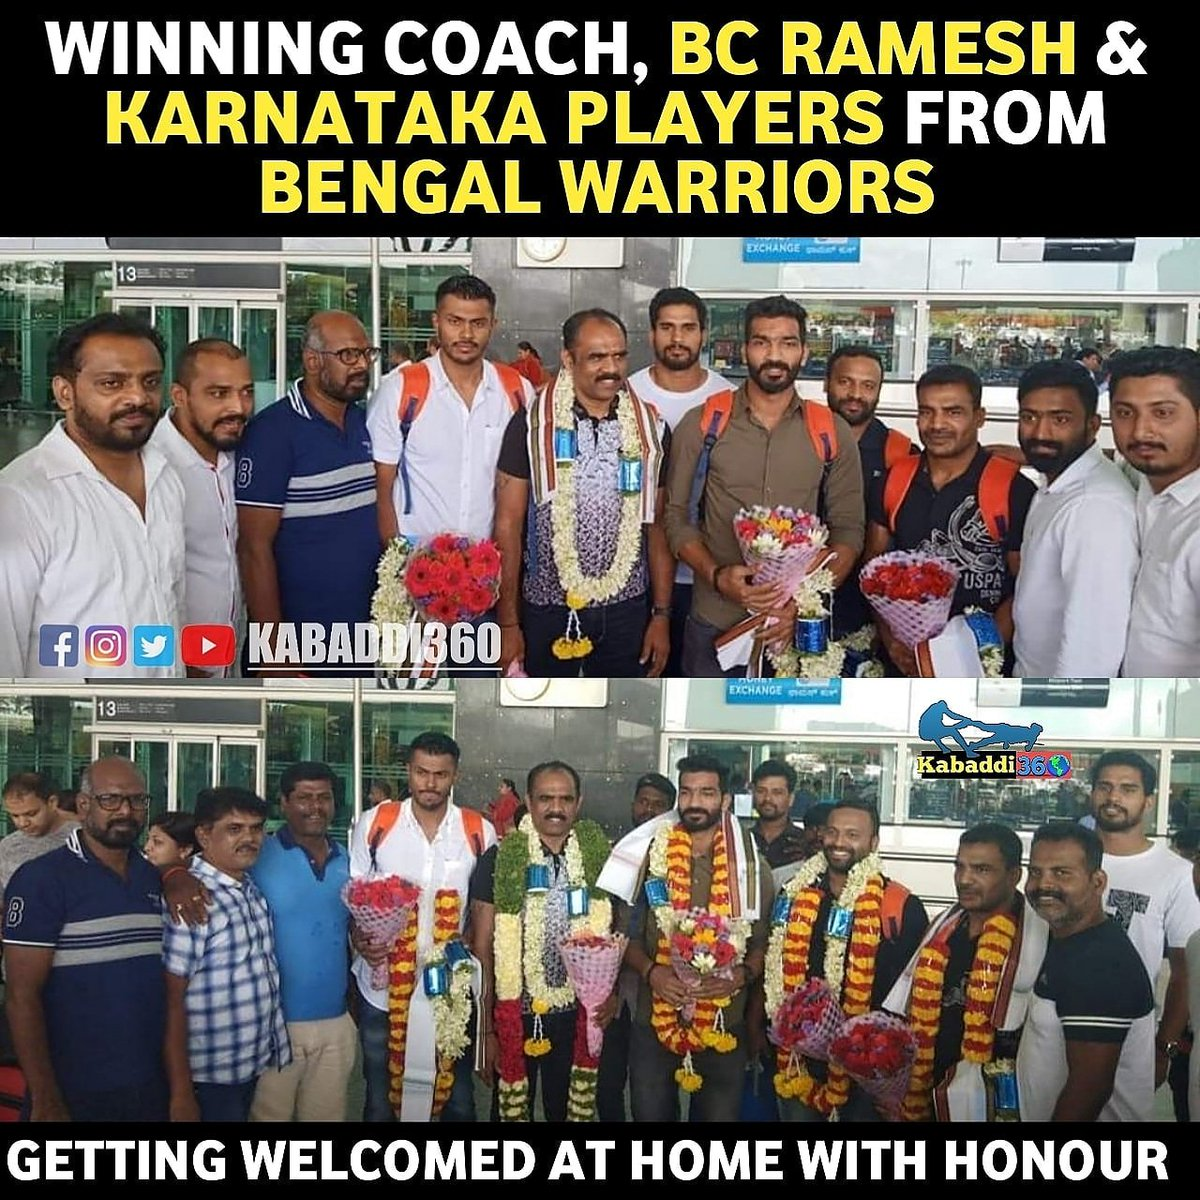 The native players & winning coach BC Ramesh were greeted at the Bangalore Airport today!  #BCRamesh  #BengalWarriors  #PKLChampions #IsseToughKuchNahi  #PKLWithKabaddi360